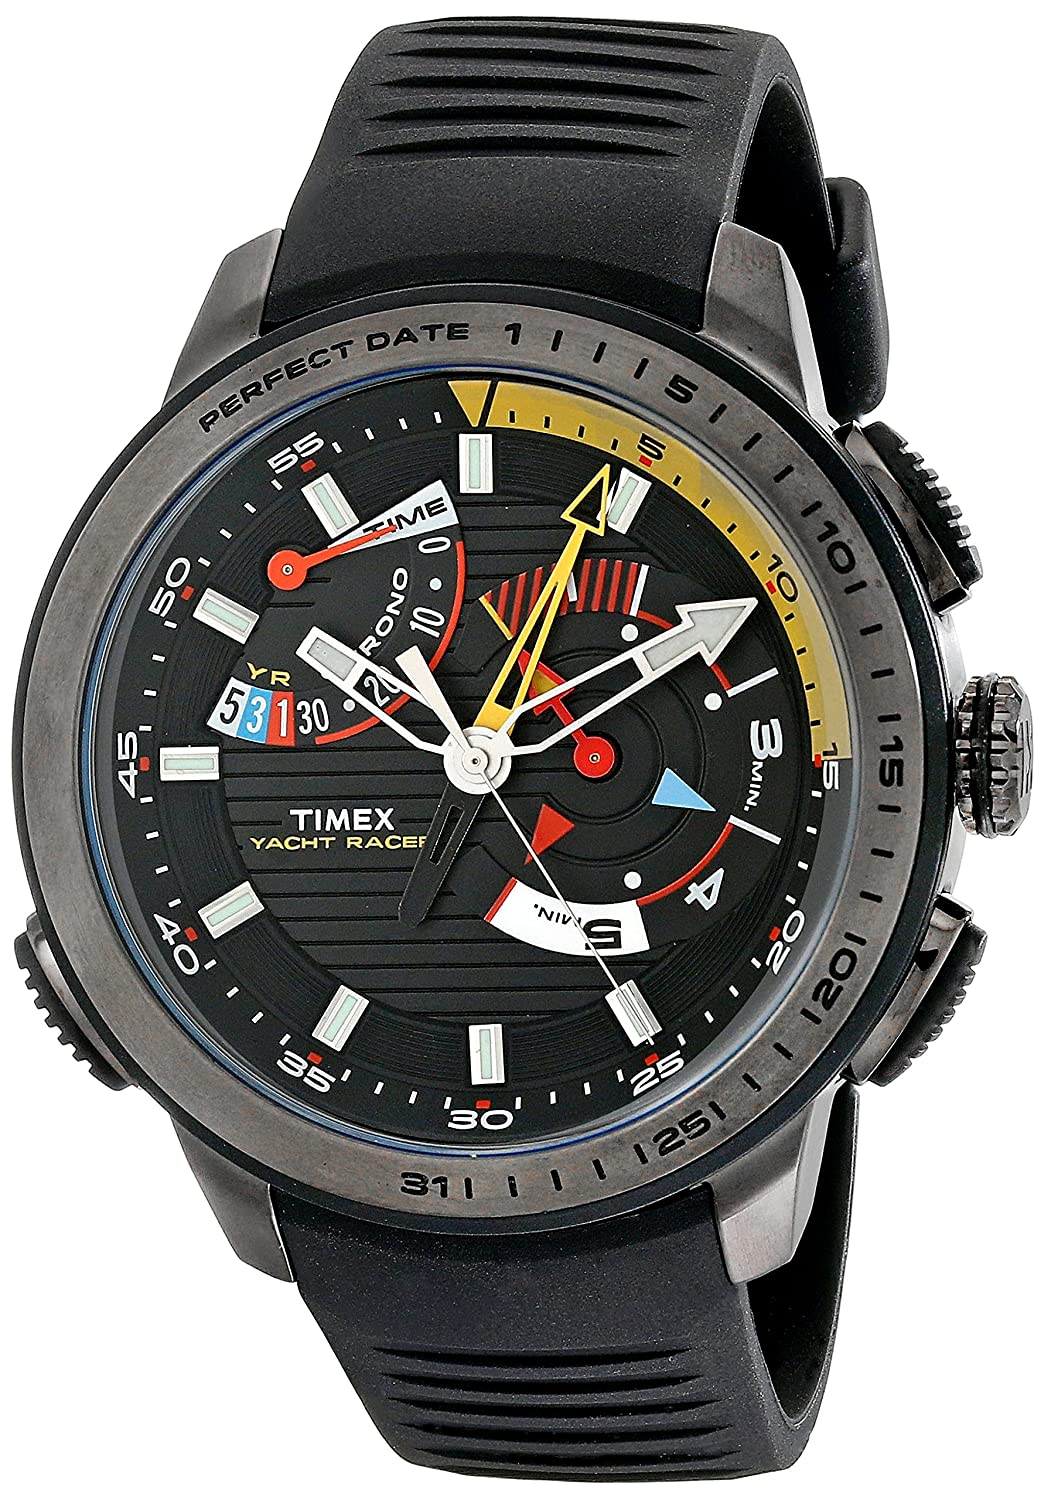 468655ff37c3 Timex Men s TW2P44500DH Intelligent Quartz Yacht Racer Watch With Yellow  Silicone Band  Timex  Amazon.com.mx  Relojes